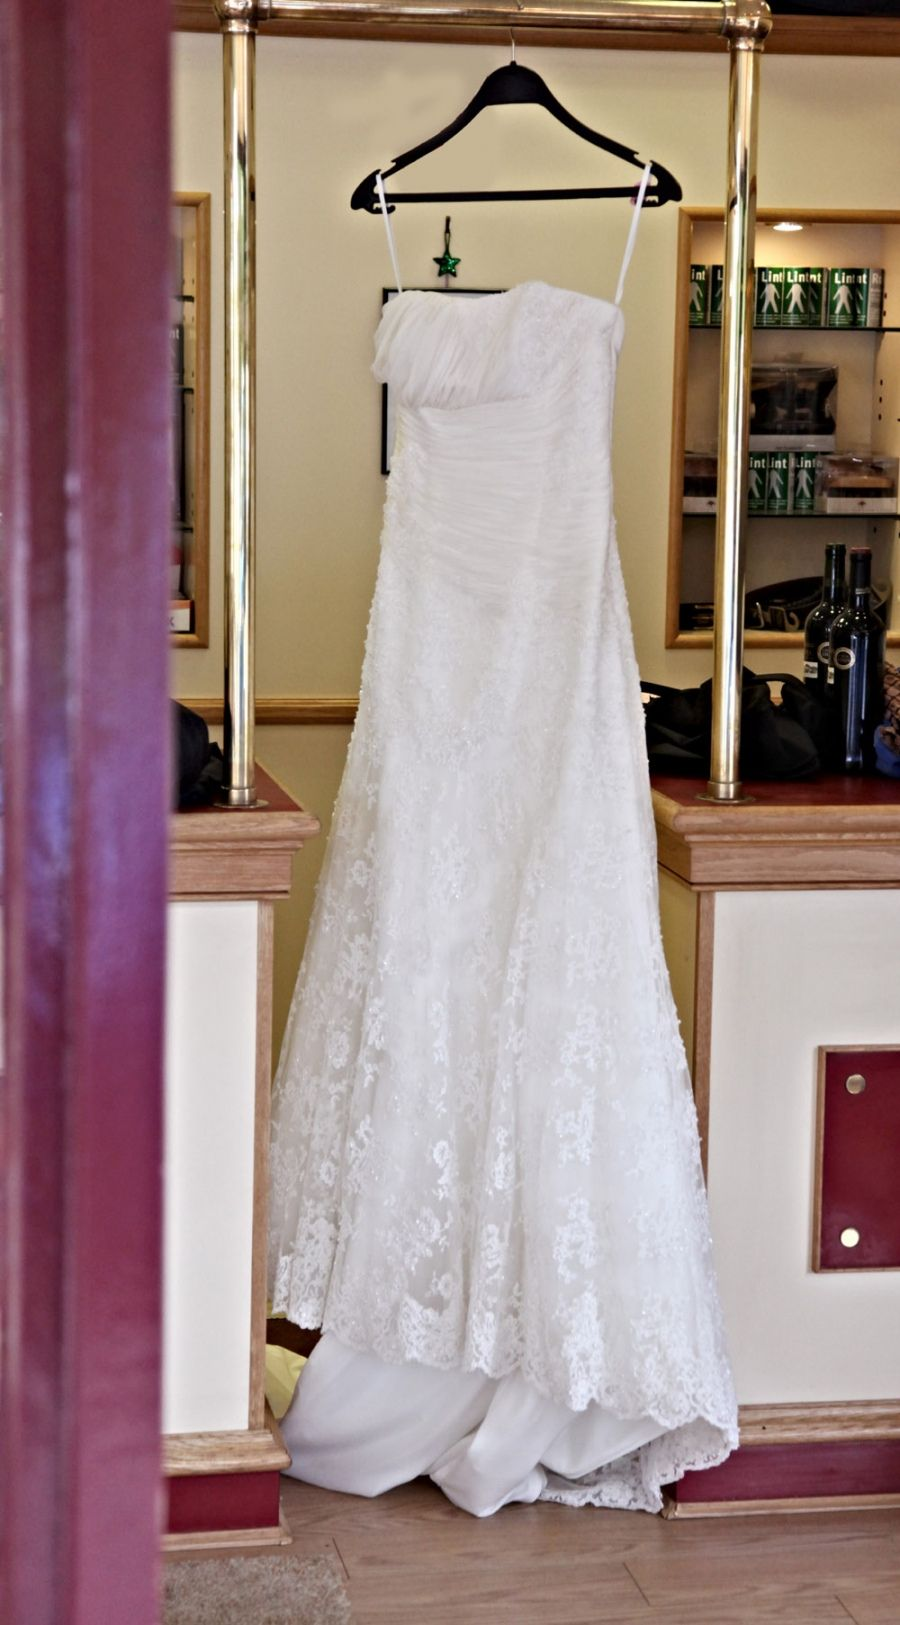 Amazing 50+ Wedding Dress Dry Cleaning   Dresses For Guest At Wedding Check More At  Http